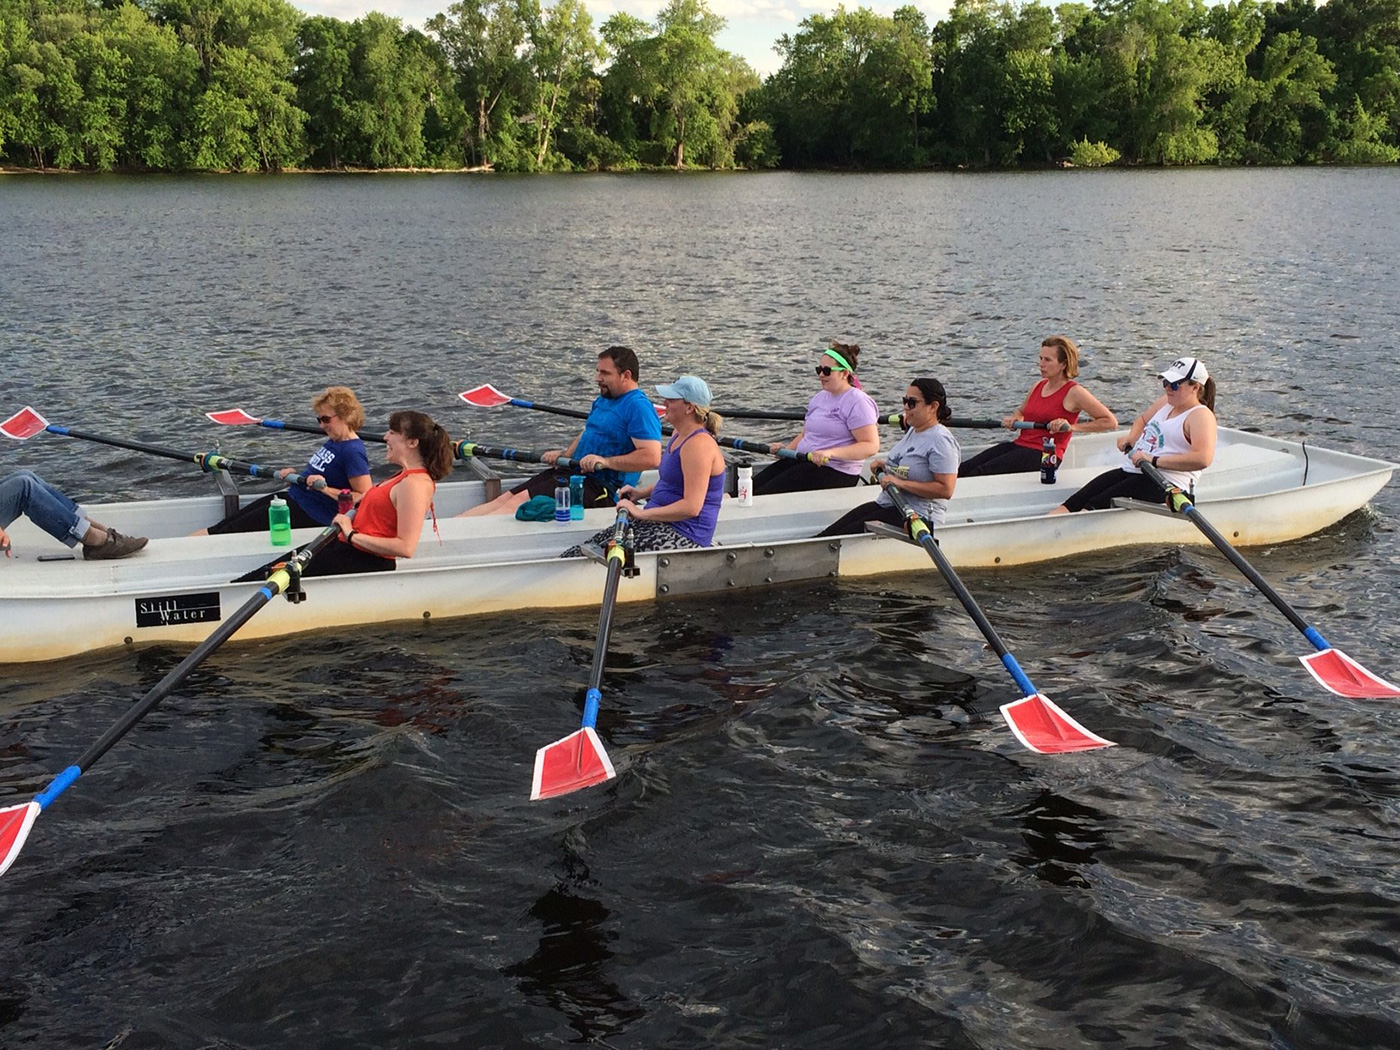 People learning to row on the Merrimack River.